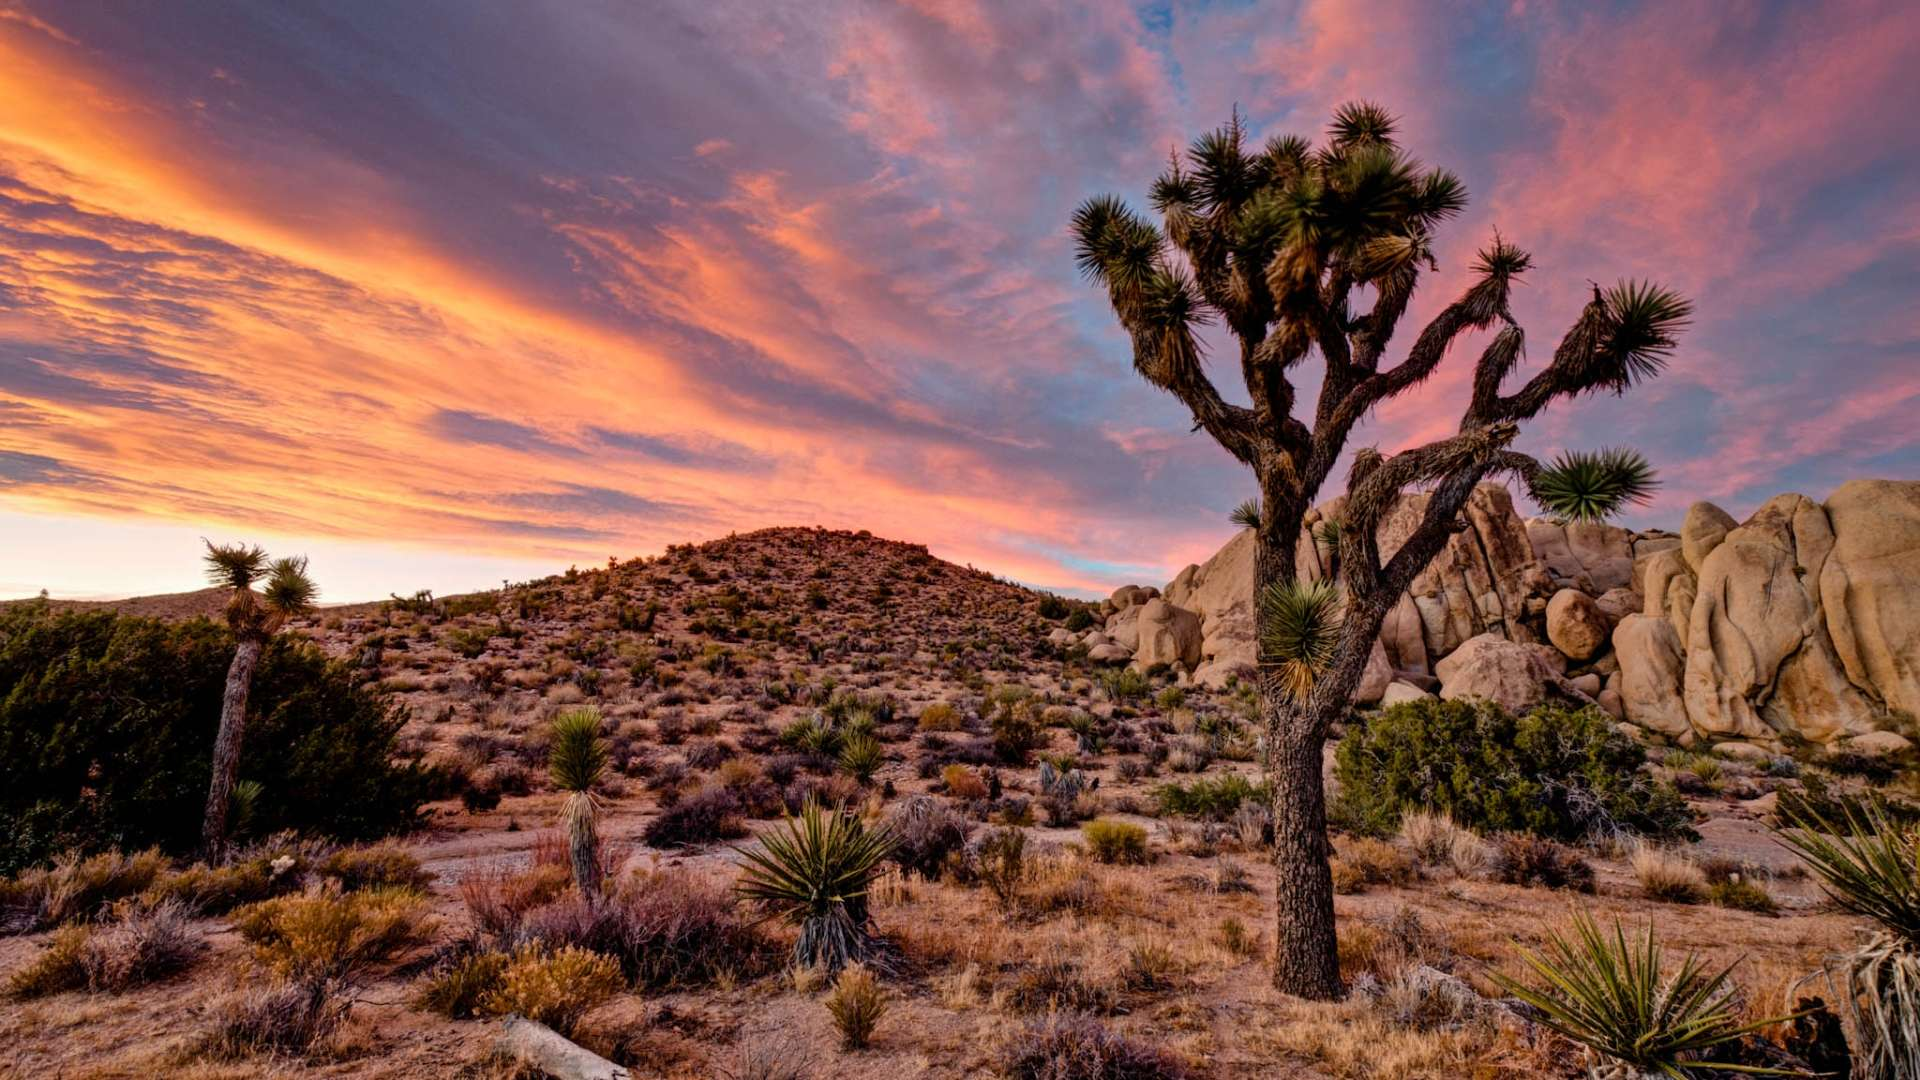 Landscape Wallpapers Hd Joshua Tree National Park In California